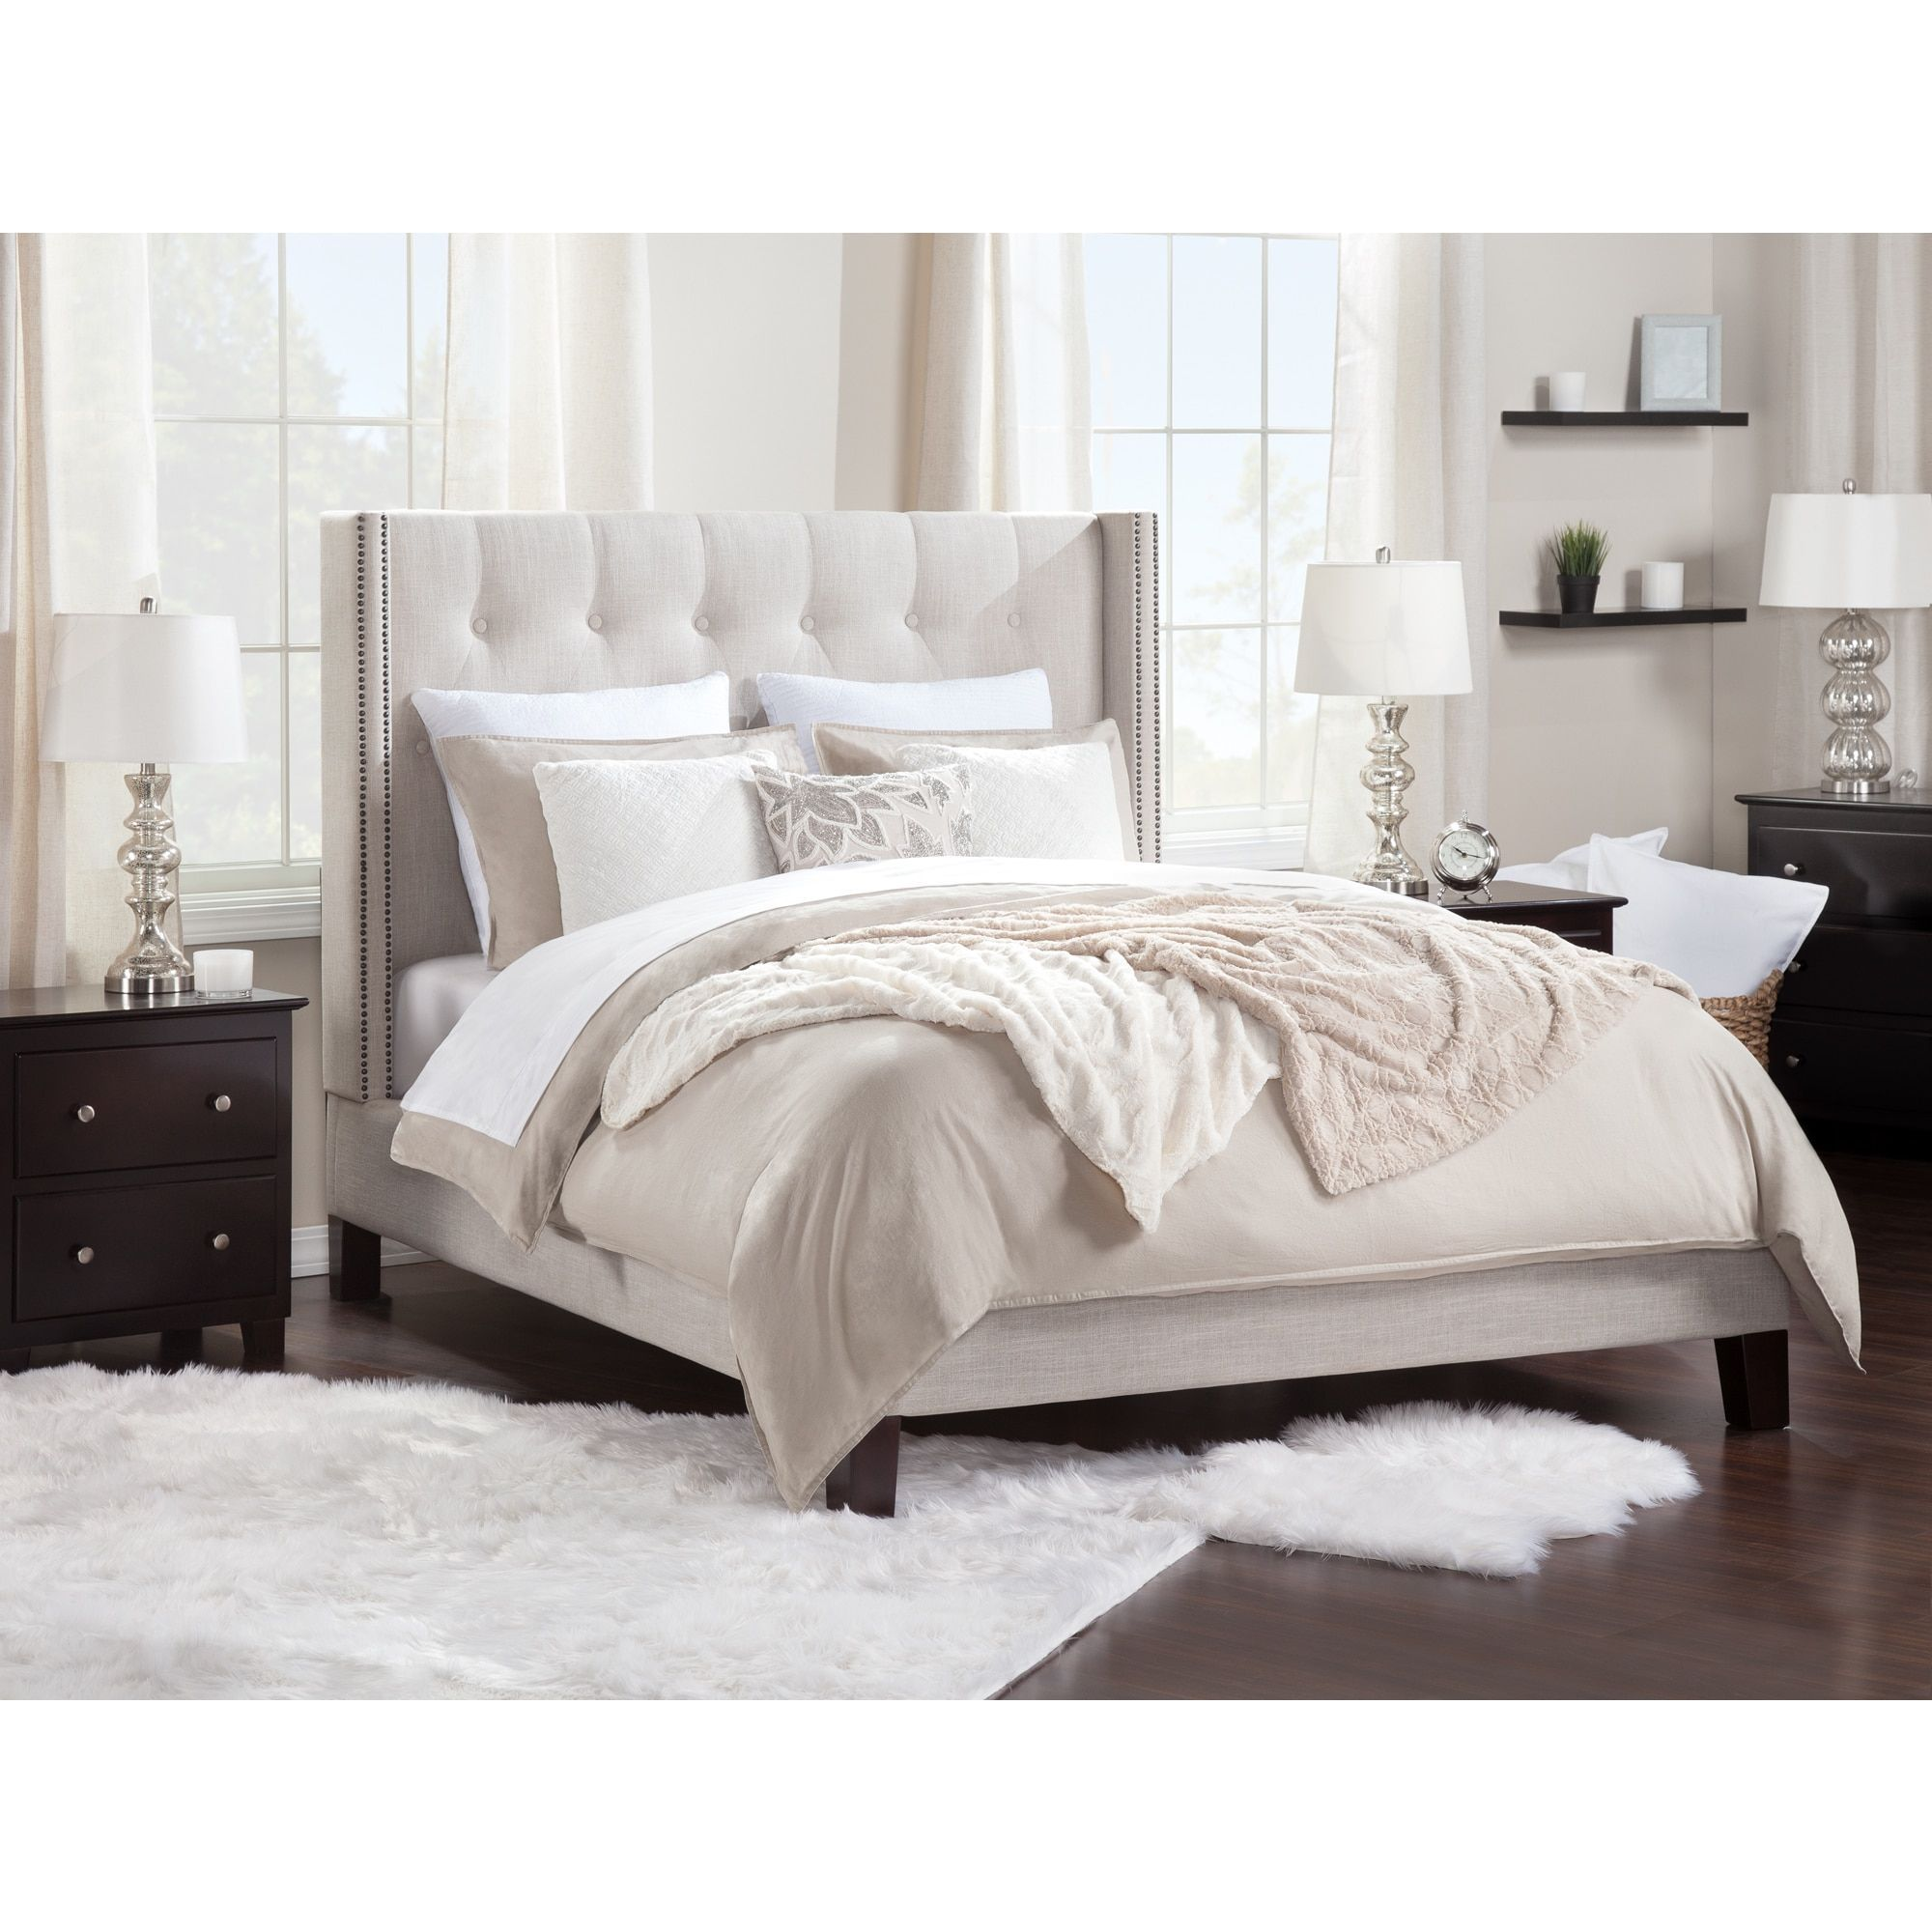 Atlantic Furniture Hadleigh Upholstered Bed Queen Size (Color ...